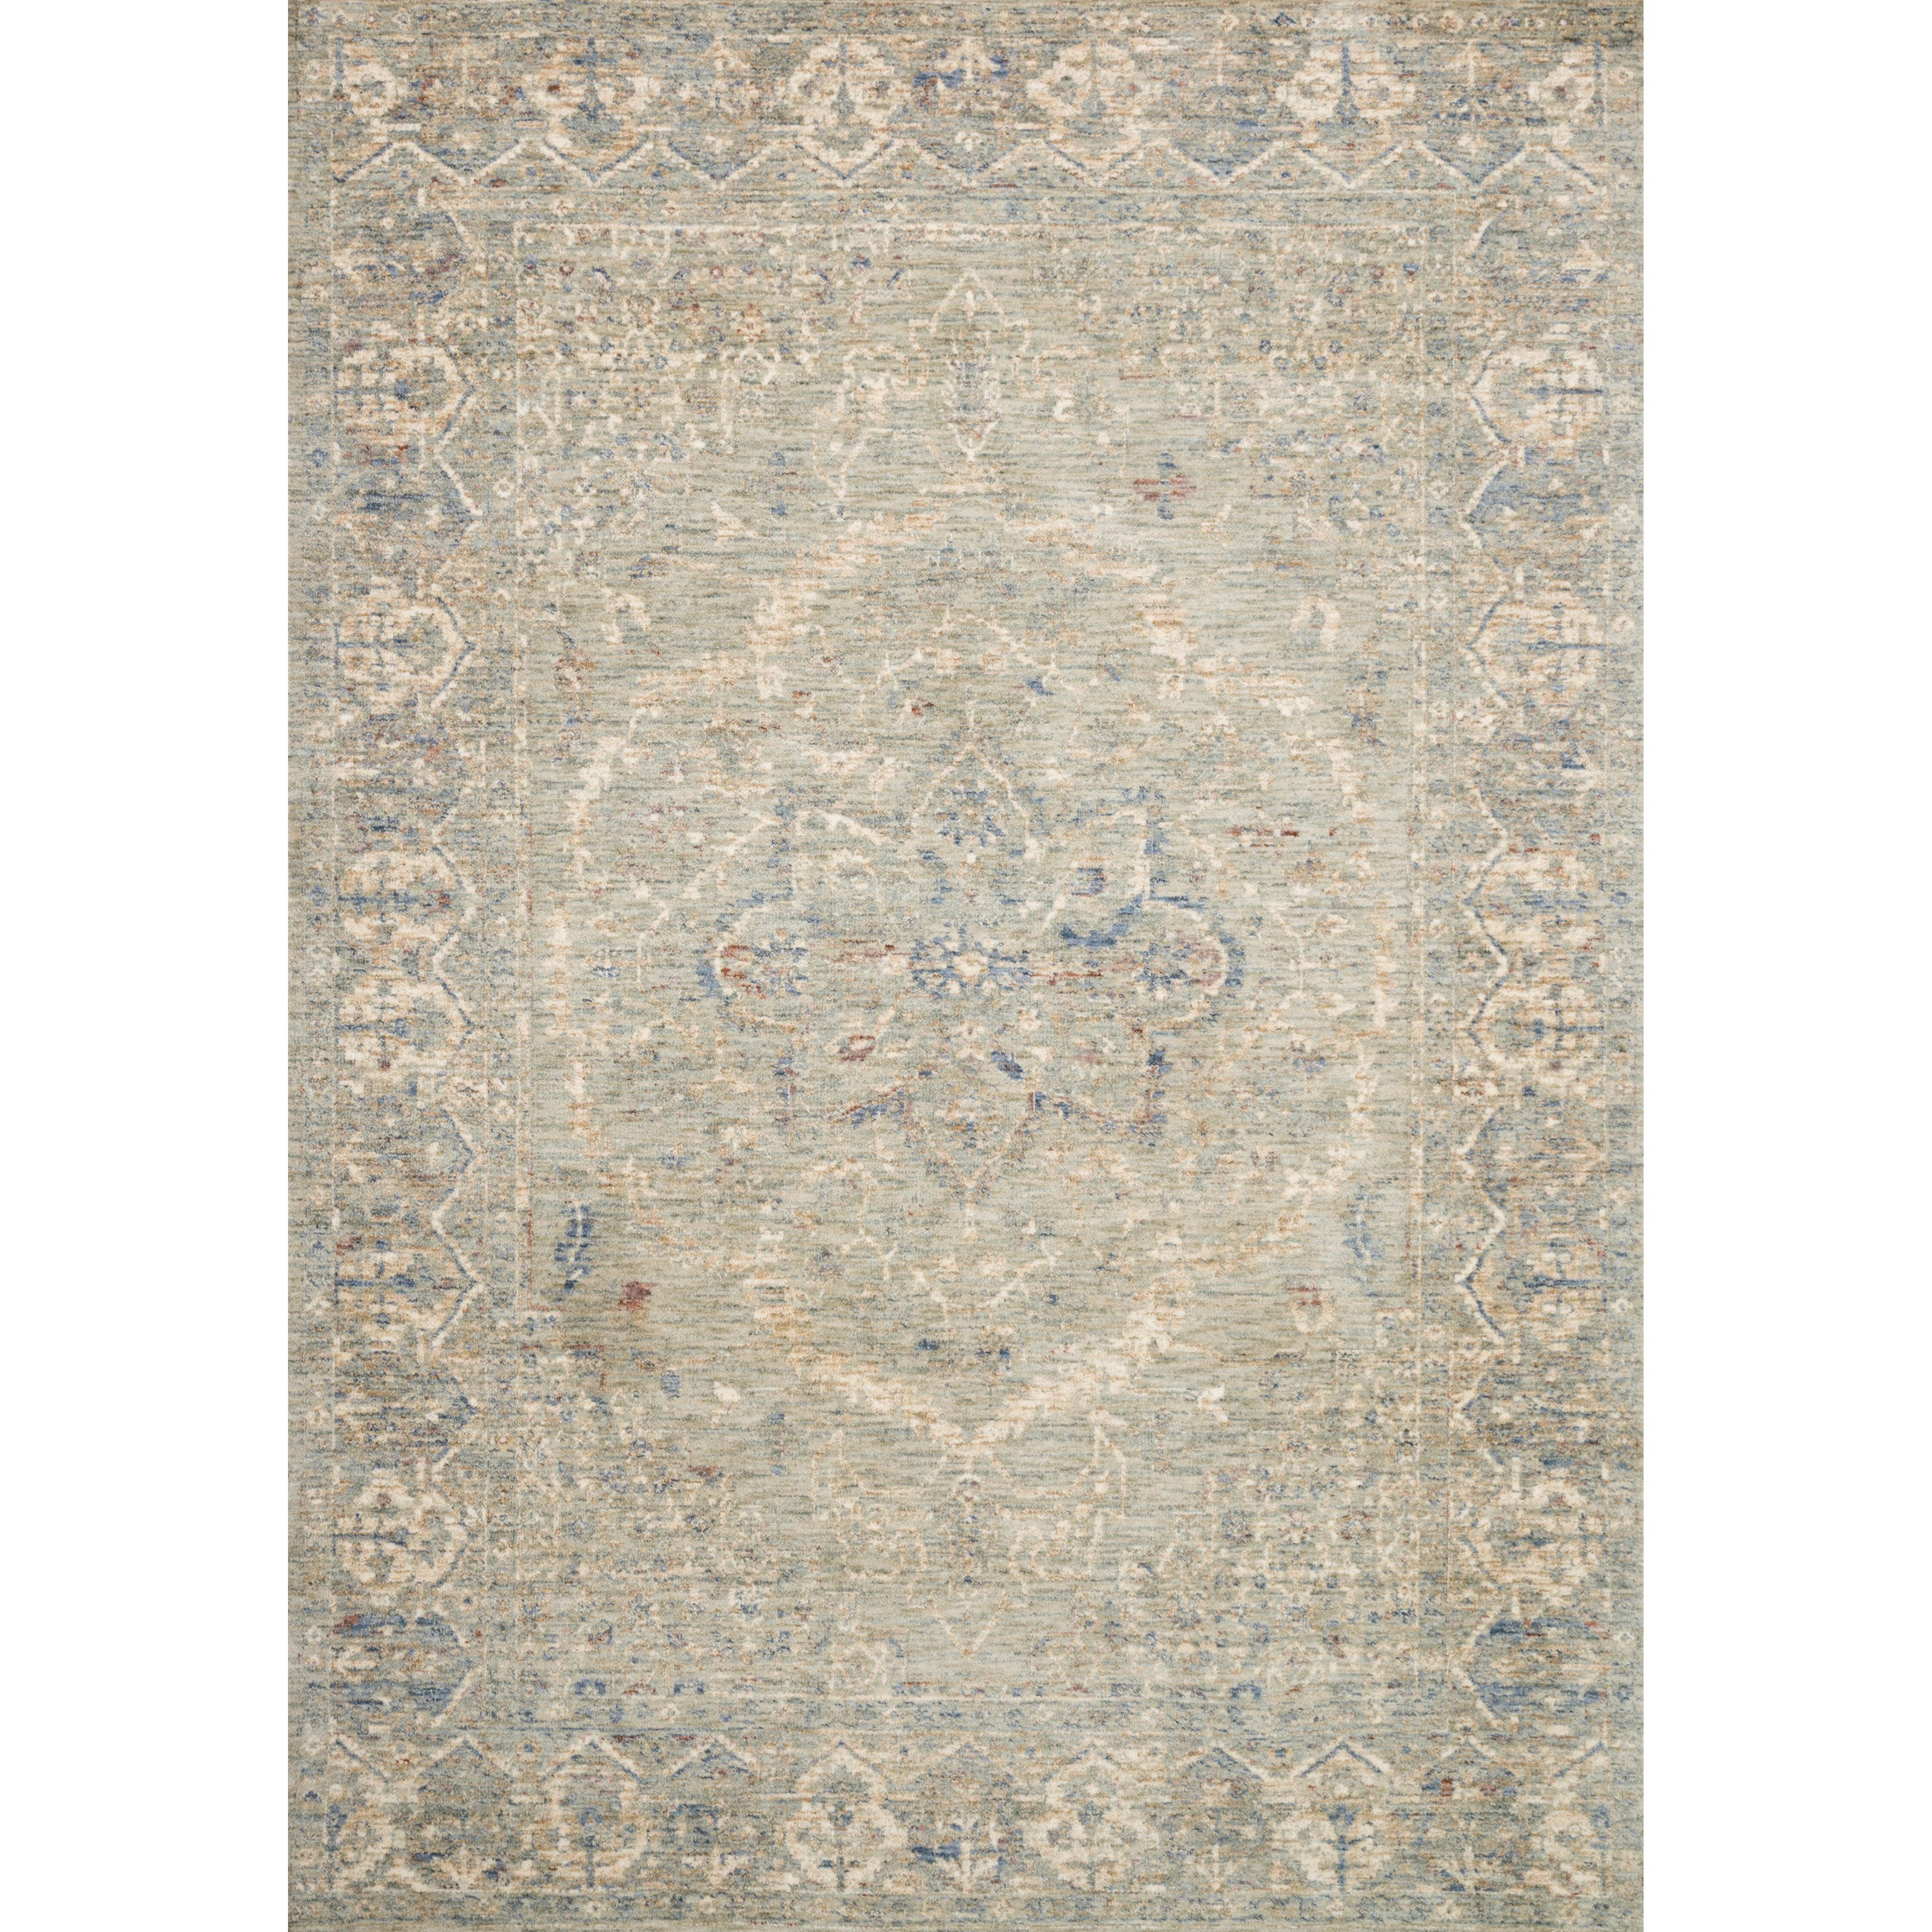 """Revere 9'6"""" x 12'5"""" Mist Rug by Loloi Rugs at Virginia Furniture Market"""